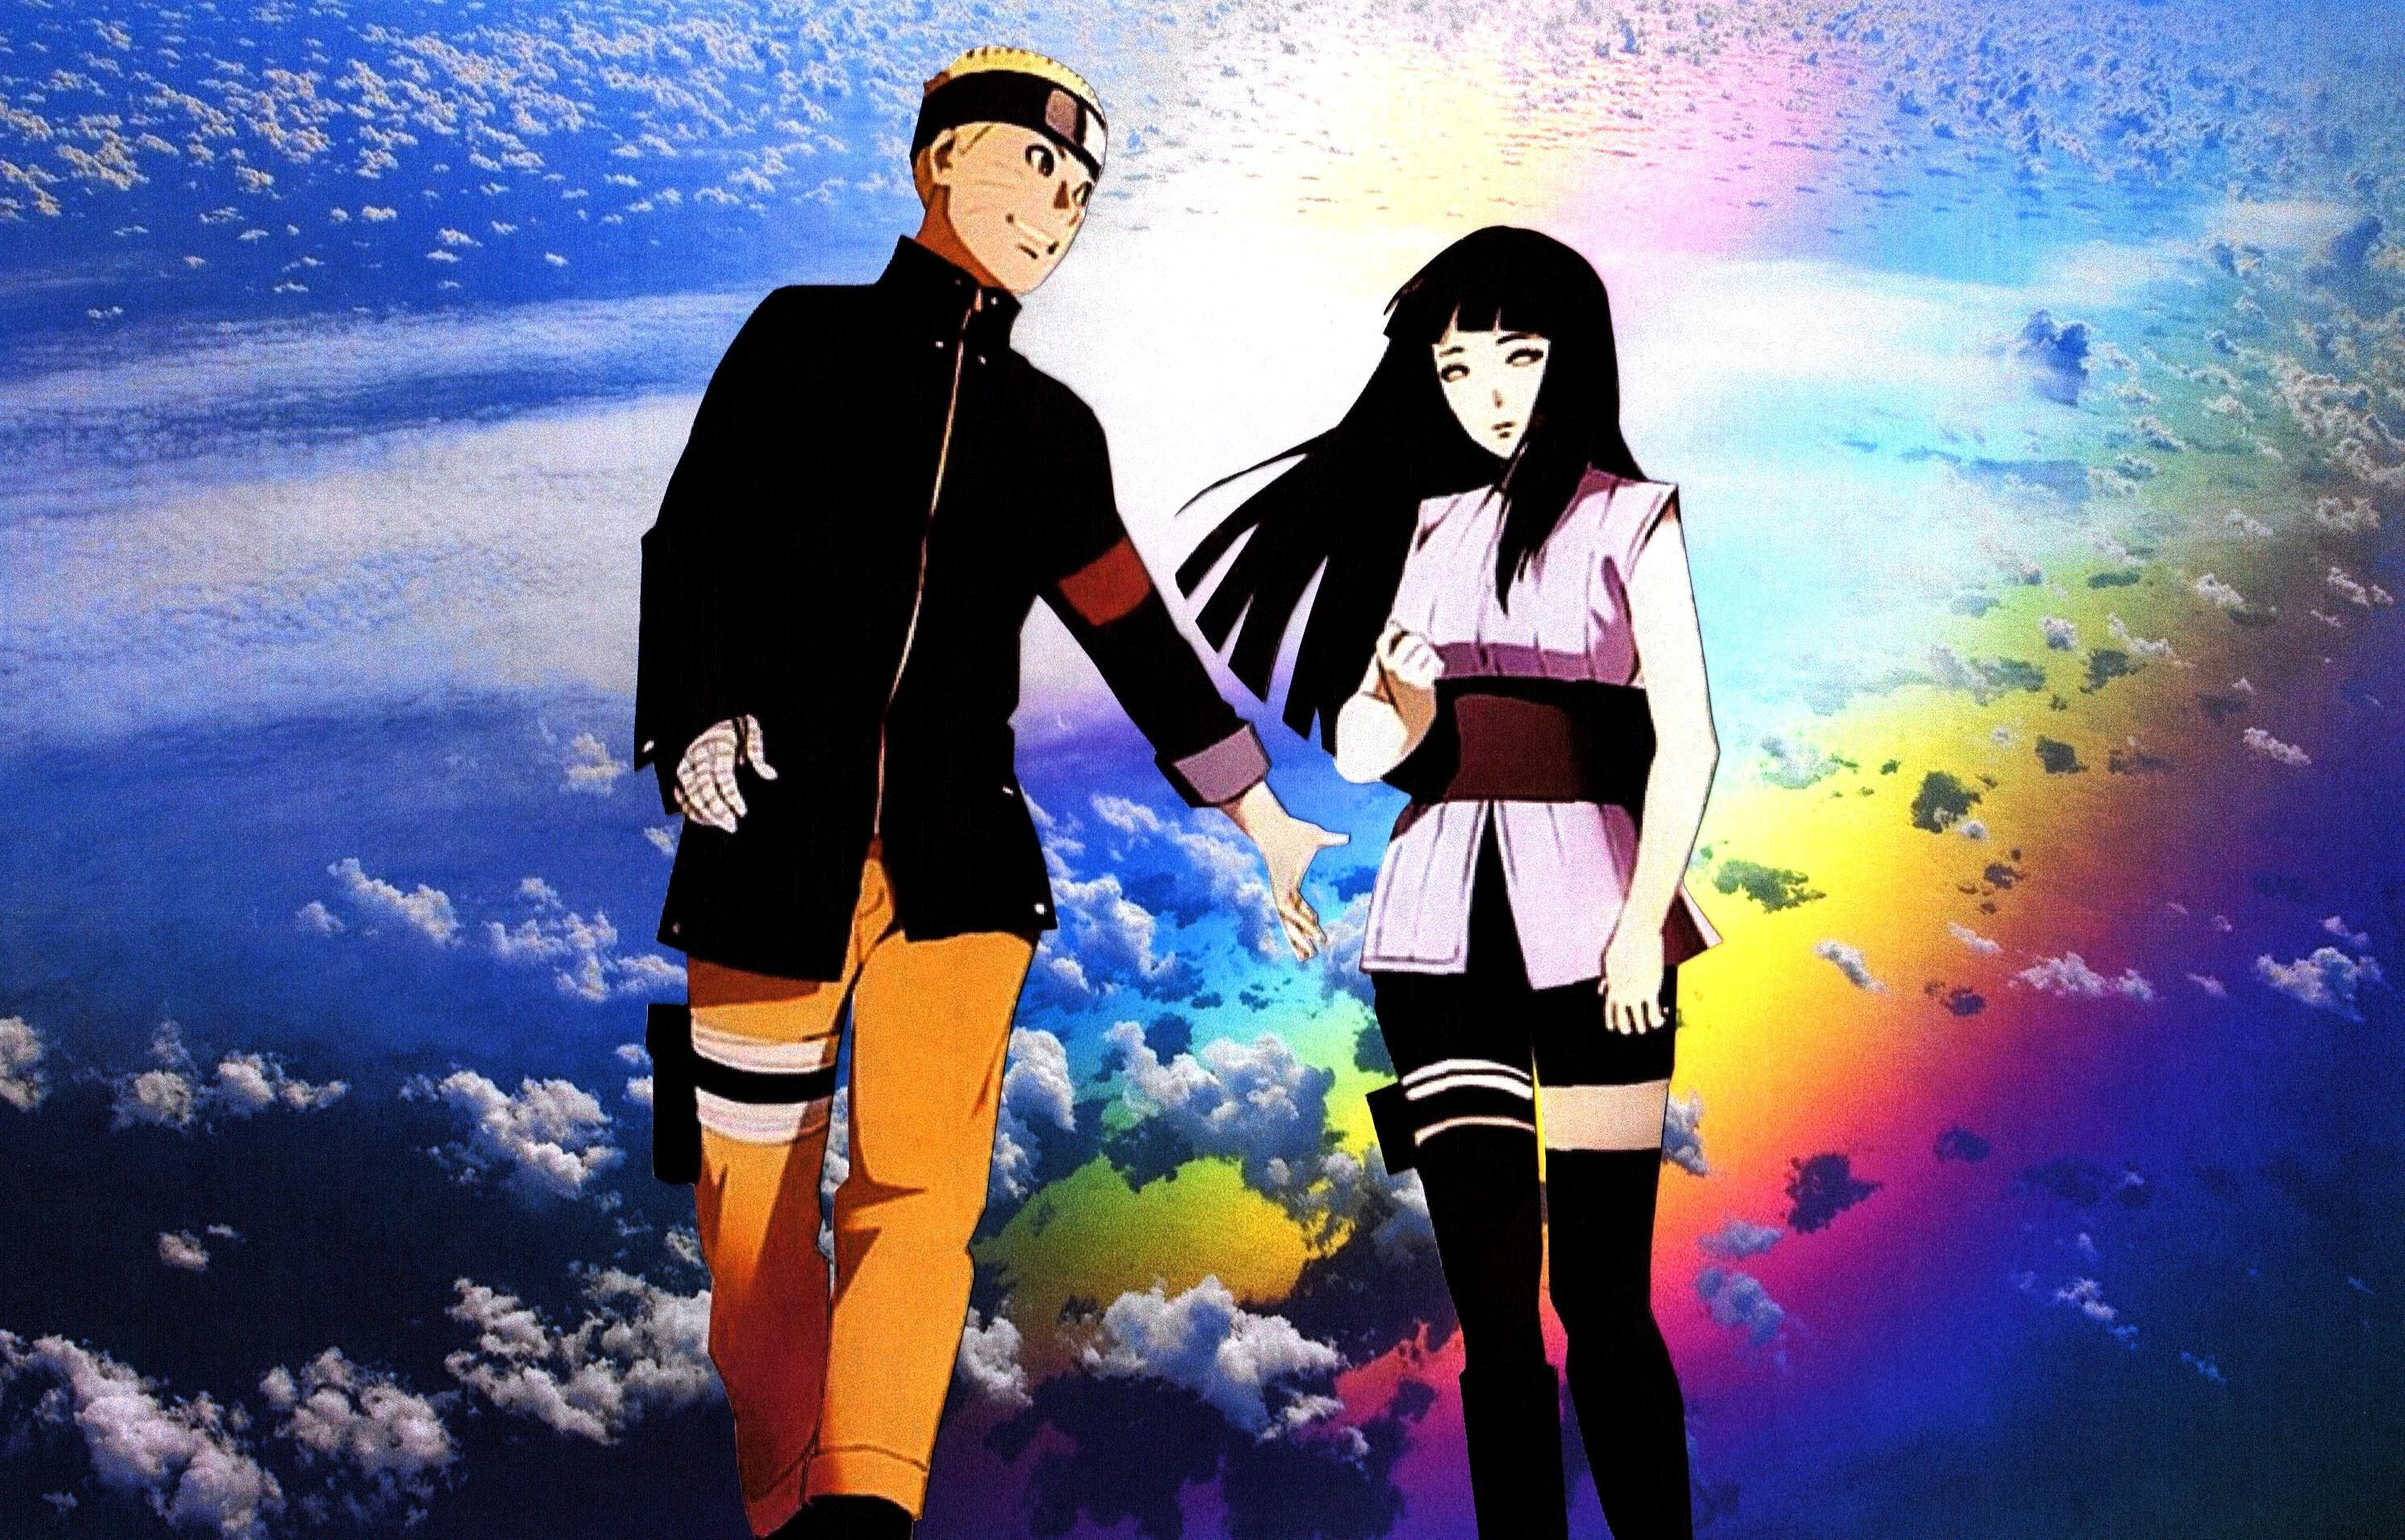 naruto and hinata the last wallpaper 6 by weissdrum on